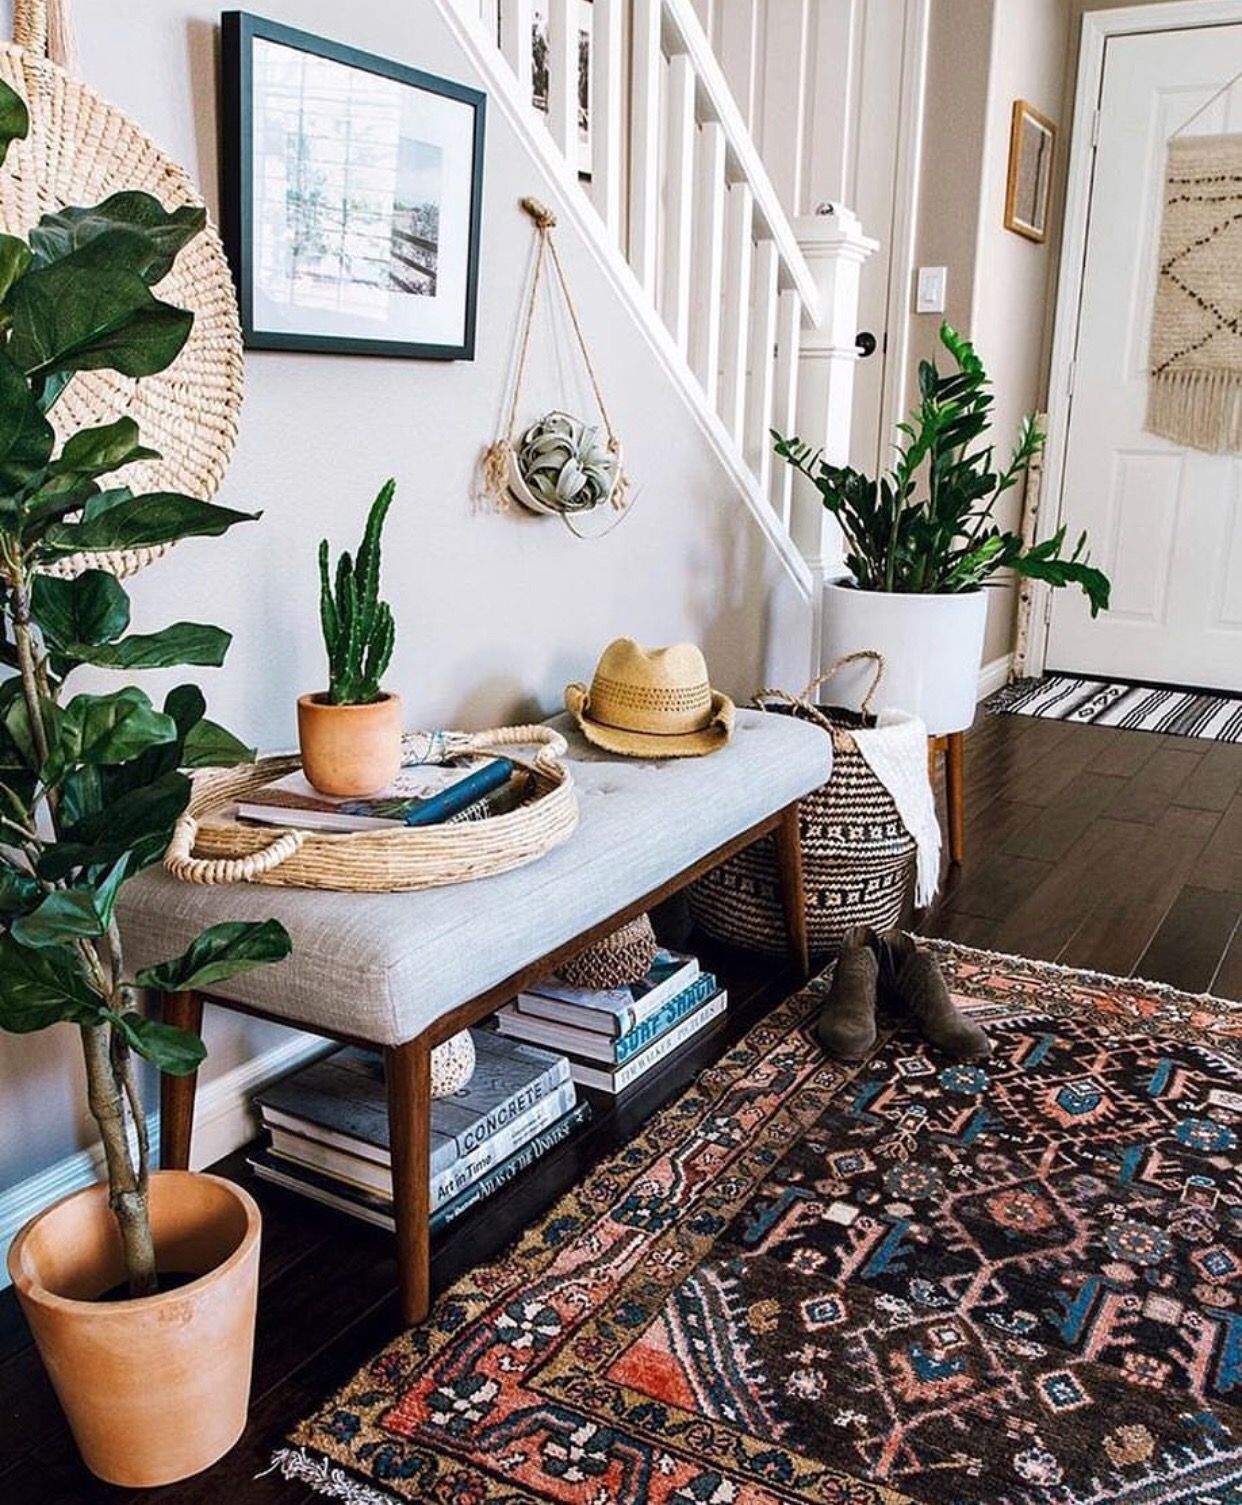 Cozy House Entryway: Love This Stylish Entryway! It Has Everything A Welcoming